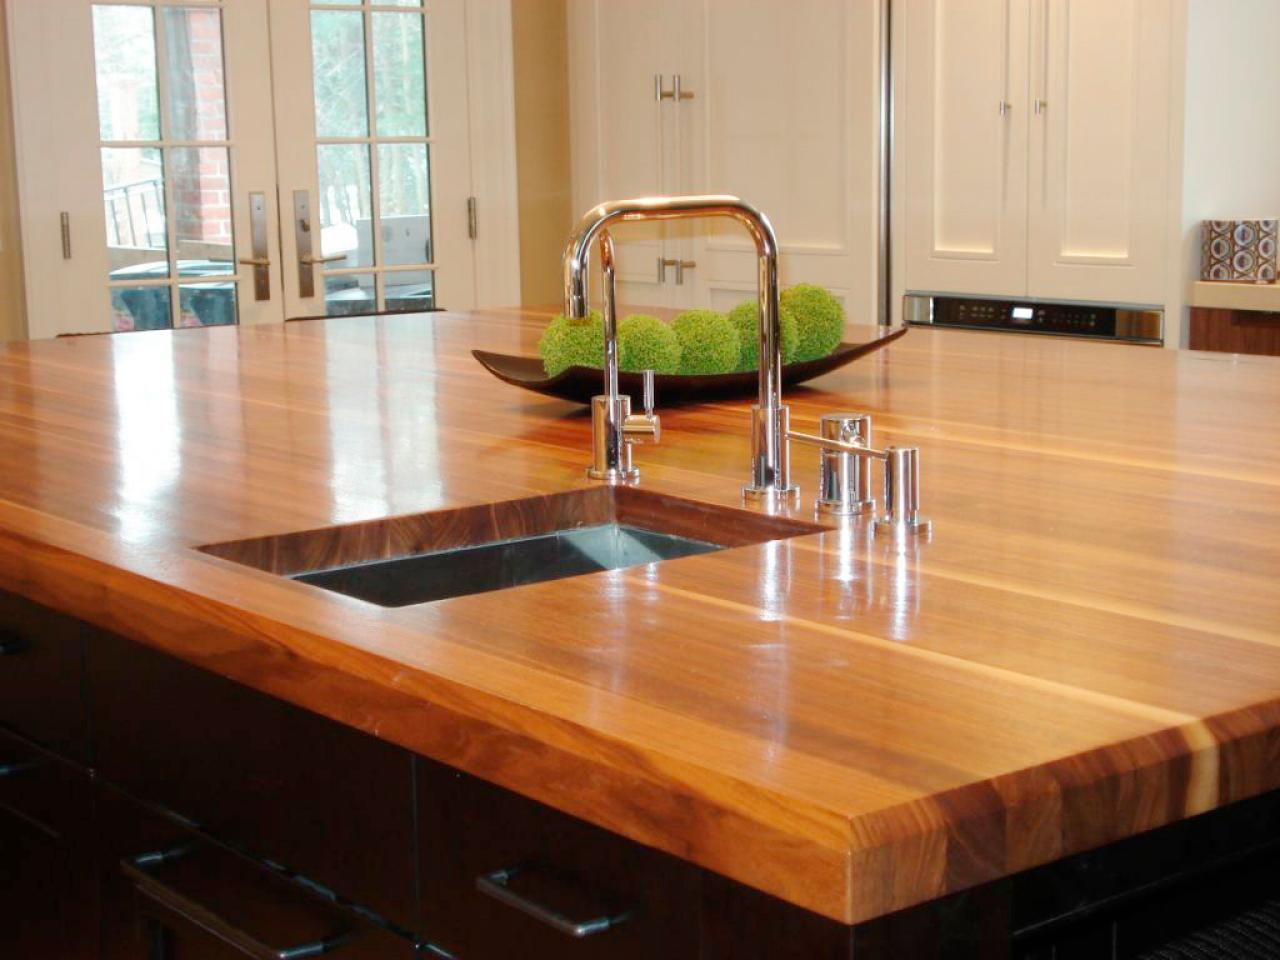 Free download Butcher Block and Wood Countertops Kitchen Designs Choose  Kitchen [1280x960] for your Desktop, Mobile & Tablet | Explore 48+  Wallpaper for Countertops | Paper Illusion Wallpaper Countertop, Berlin  Wallpaper for